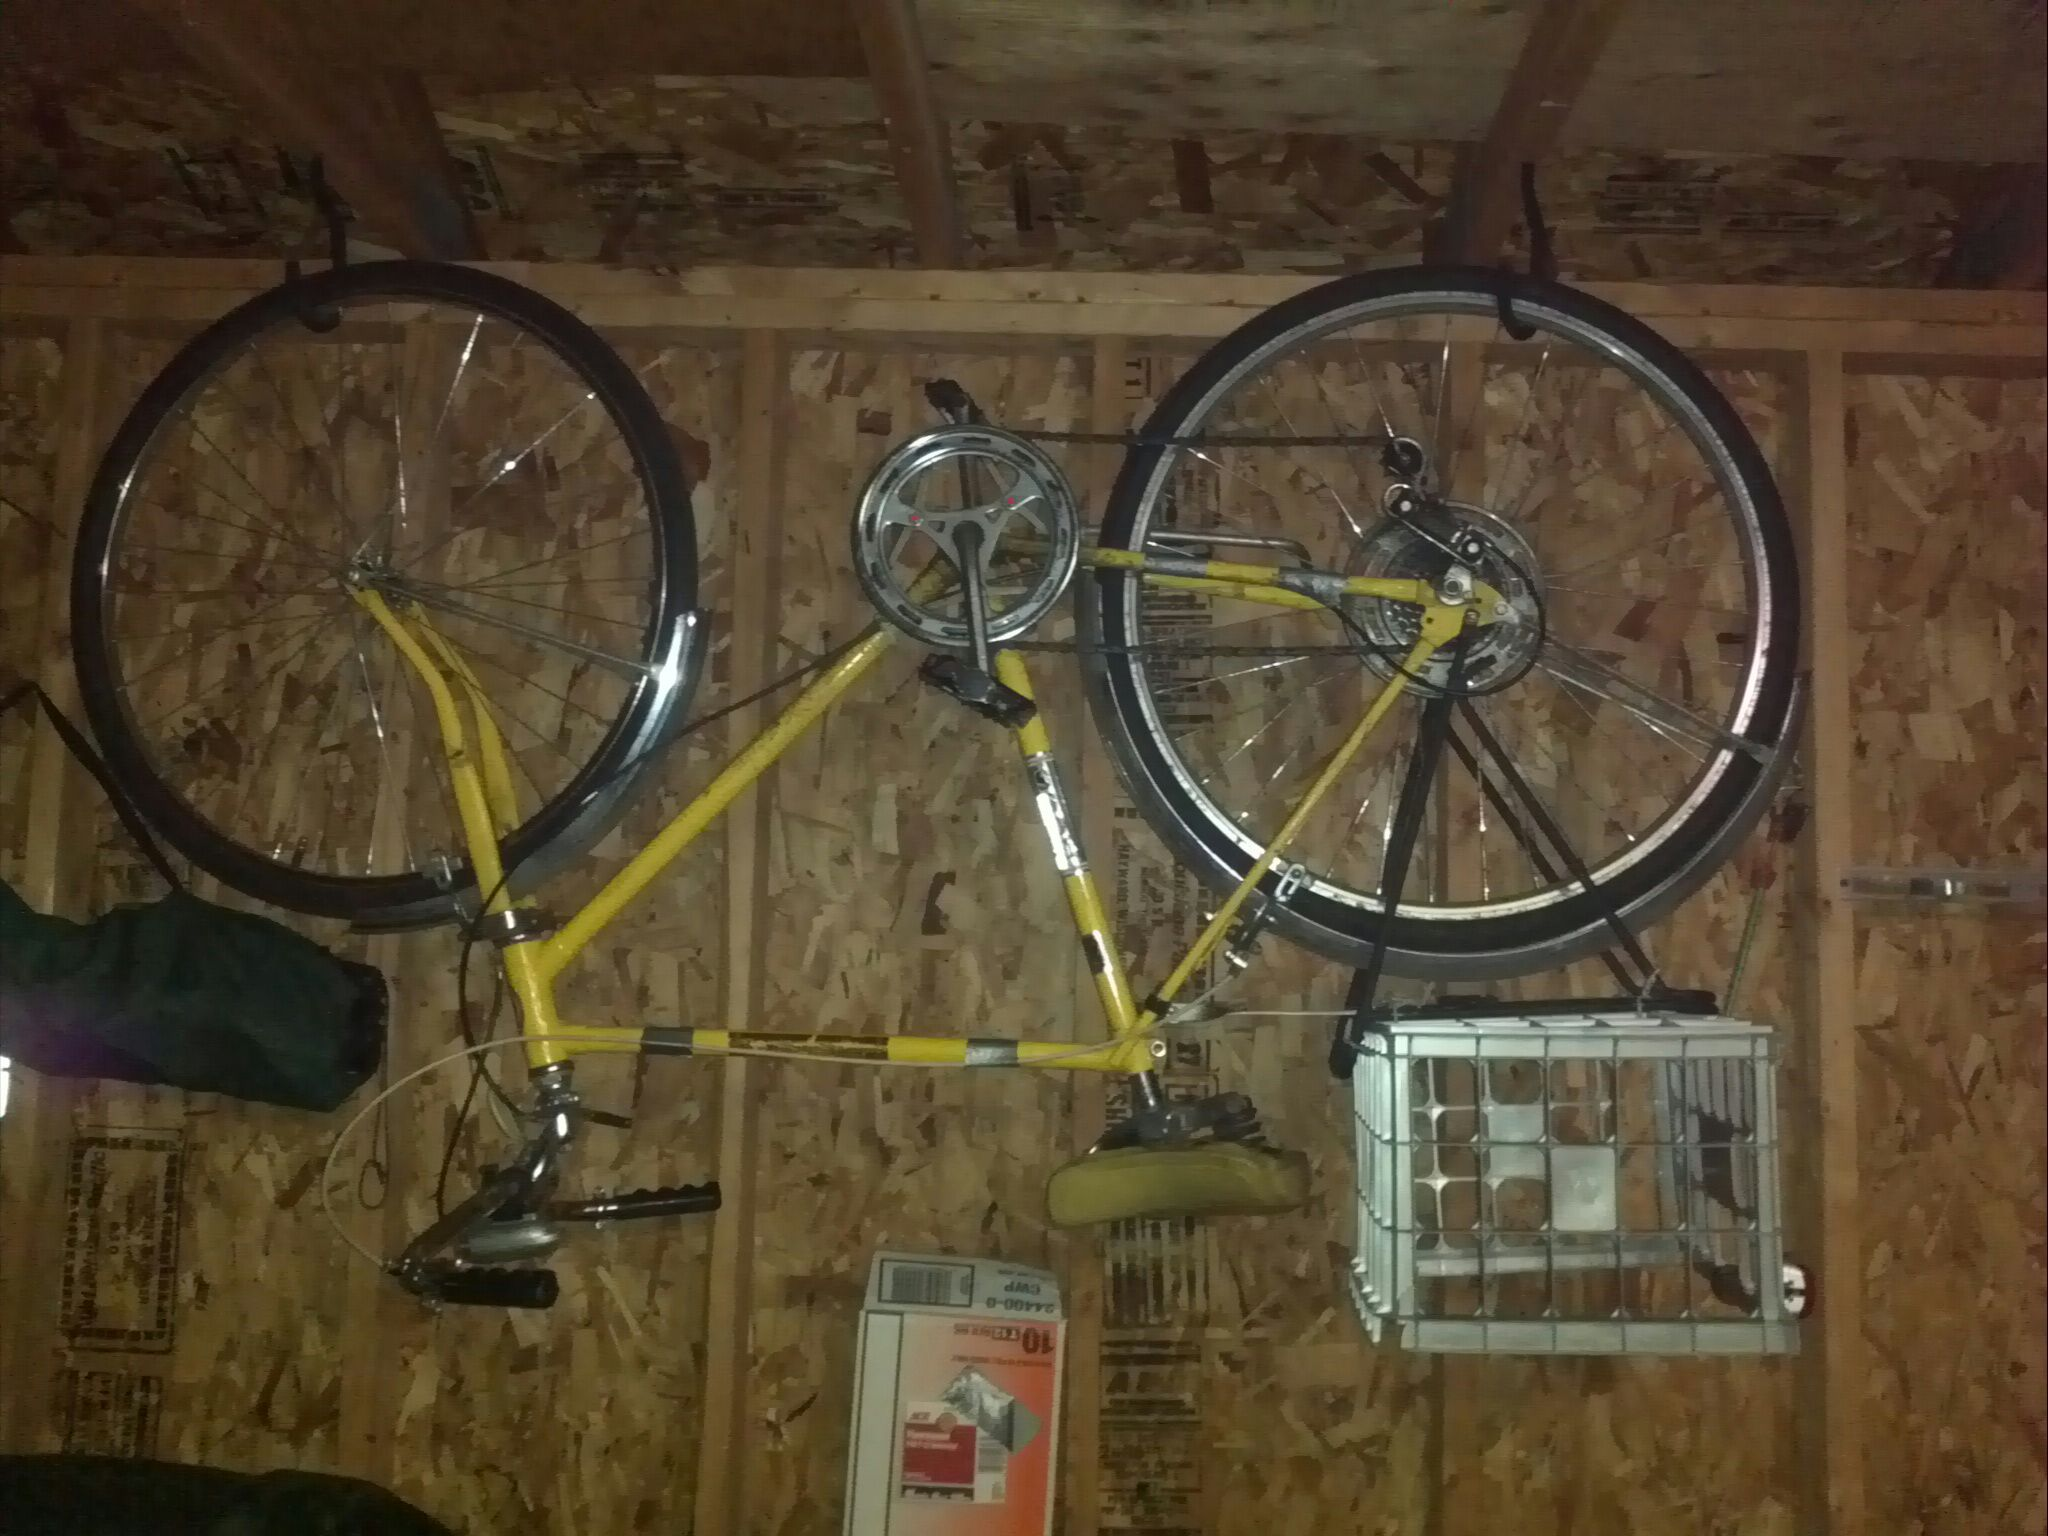 bike storage family tuesday hang iheart august organizing in garage update hangingbikes bikes